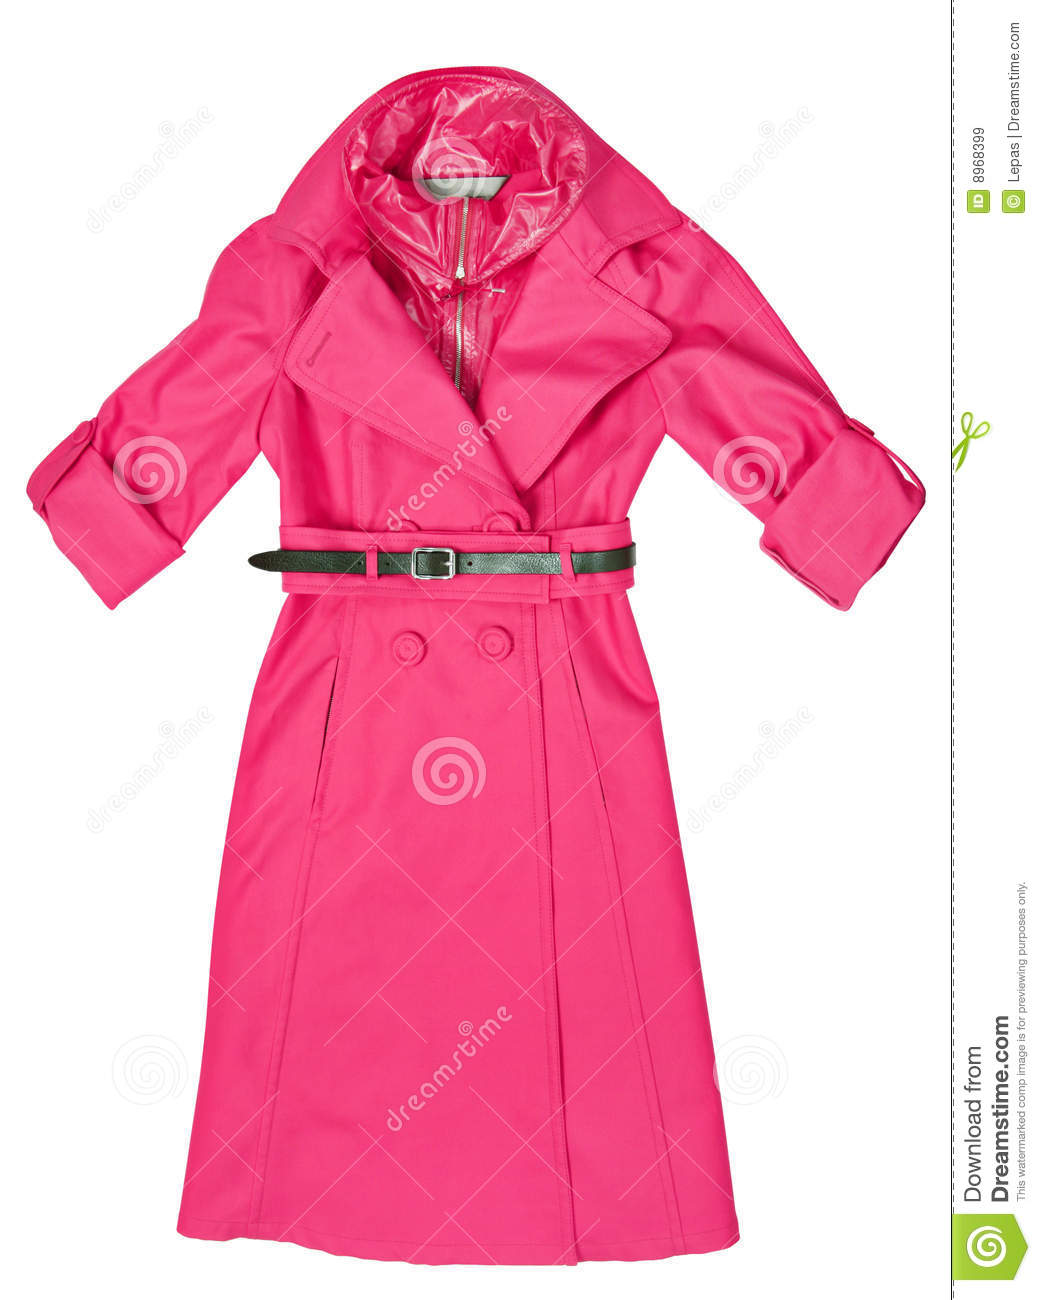 pink clothes royalty free stock images image 8968399